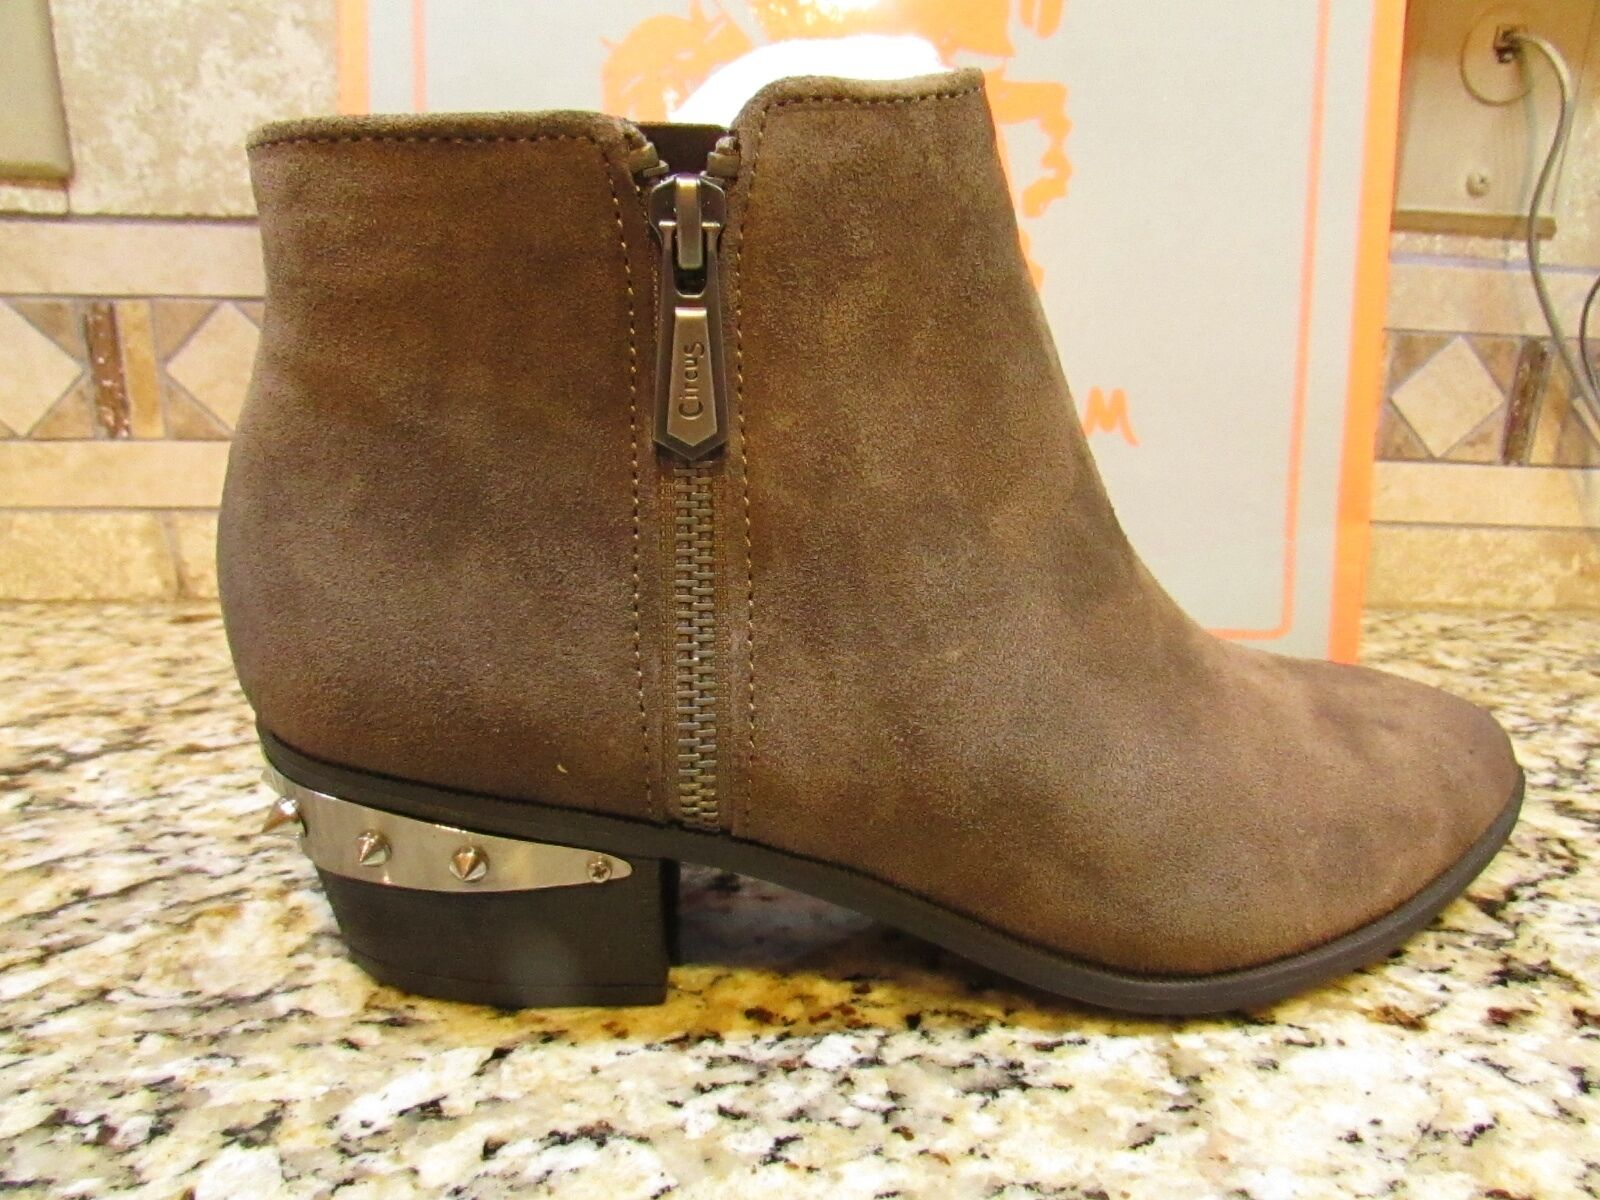 NEW SAM EDELMAN CIRCUS HOLT SUEDE LEATHER ANKLE BOOTIES BOOTS WOMENS 8.5 FREE SH